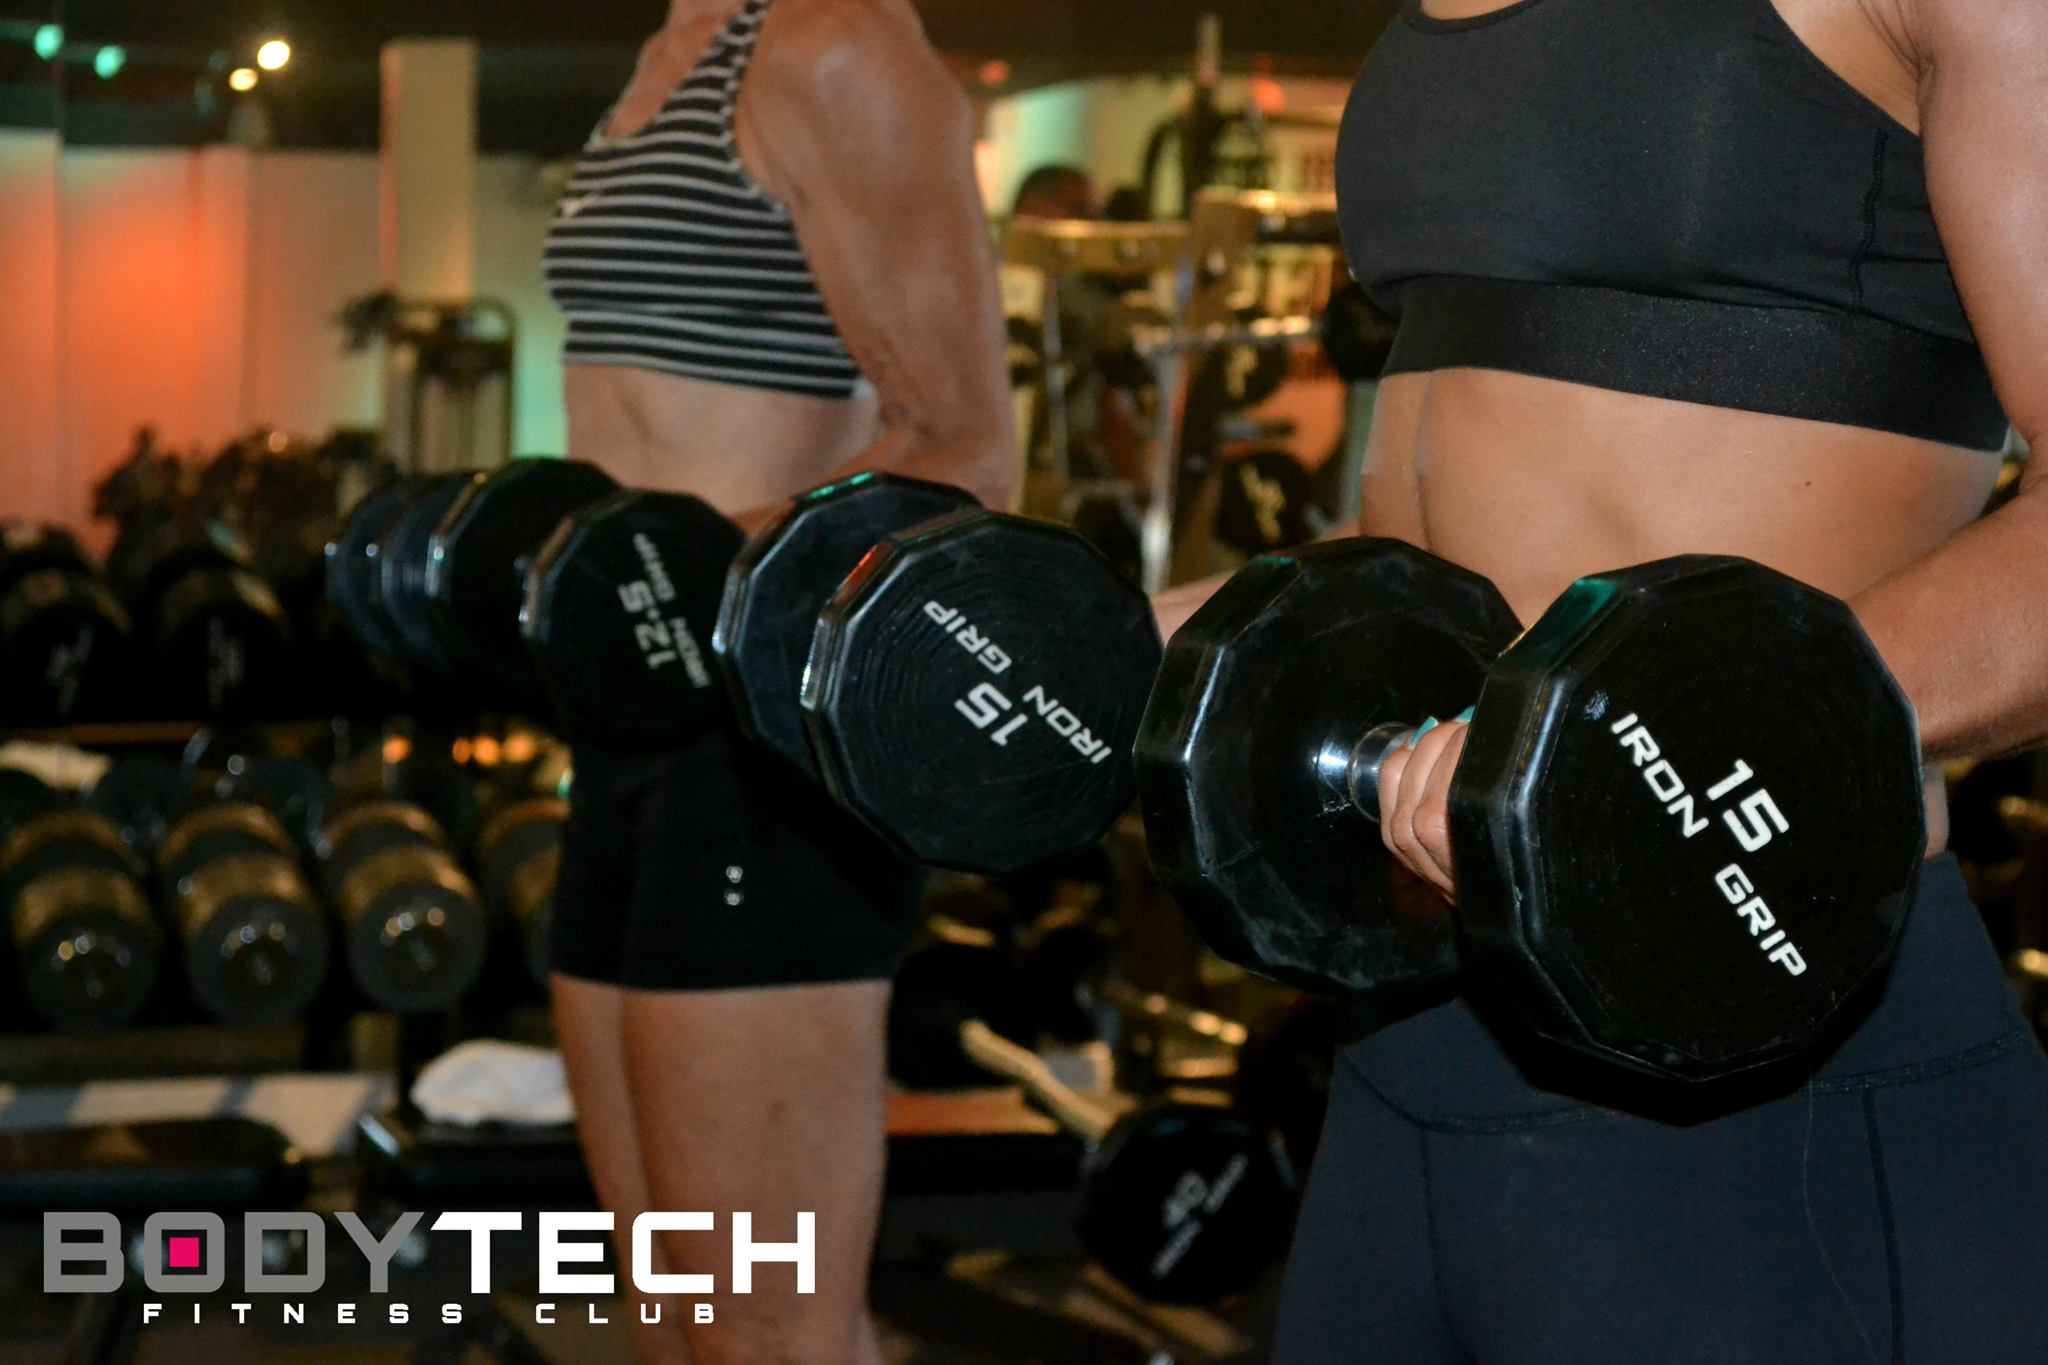 Workout at Body Tech